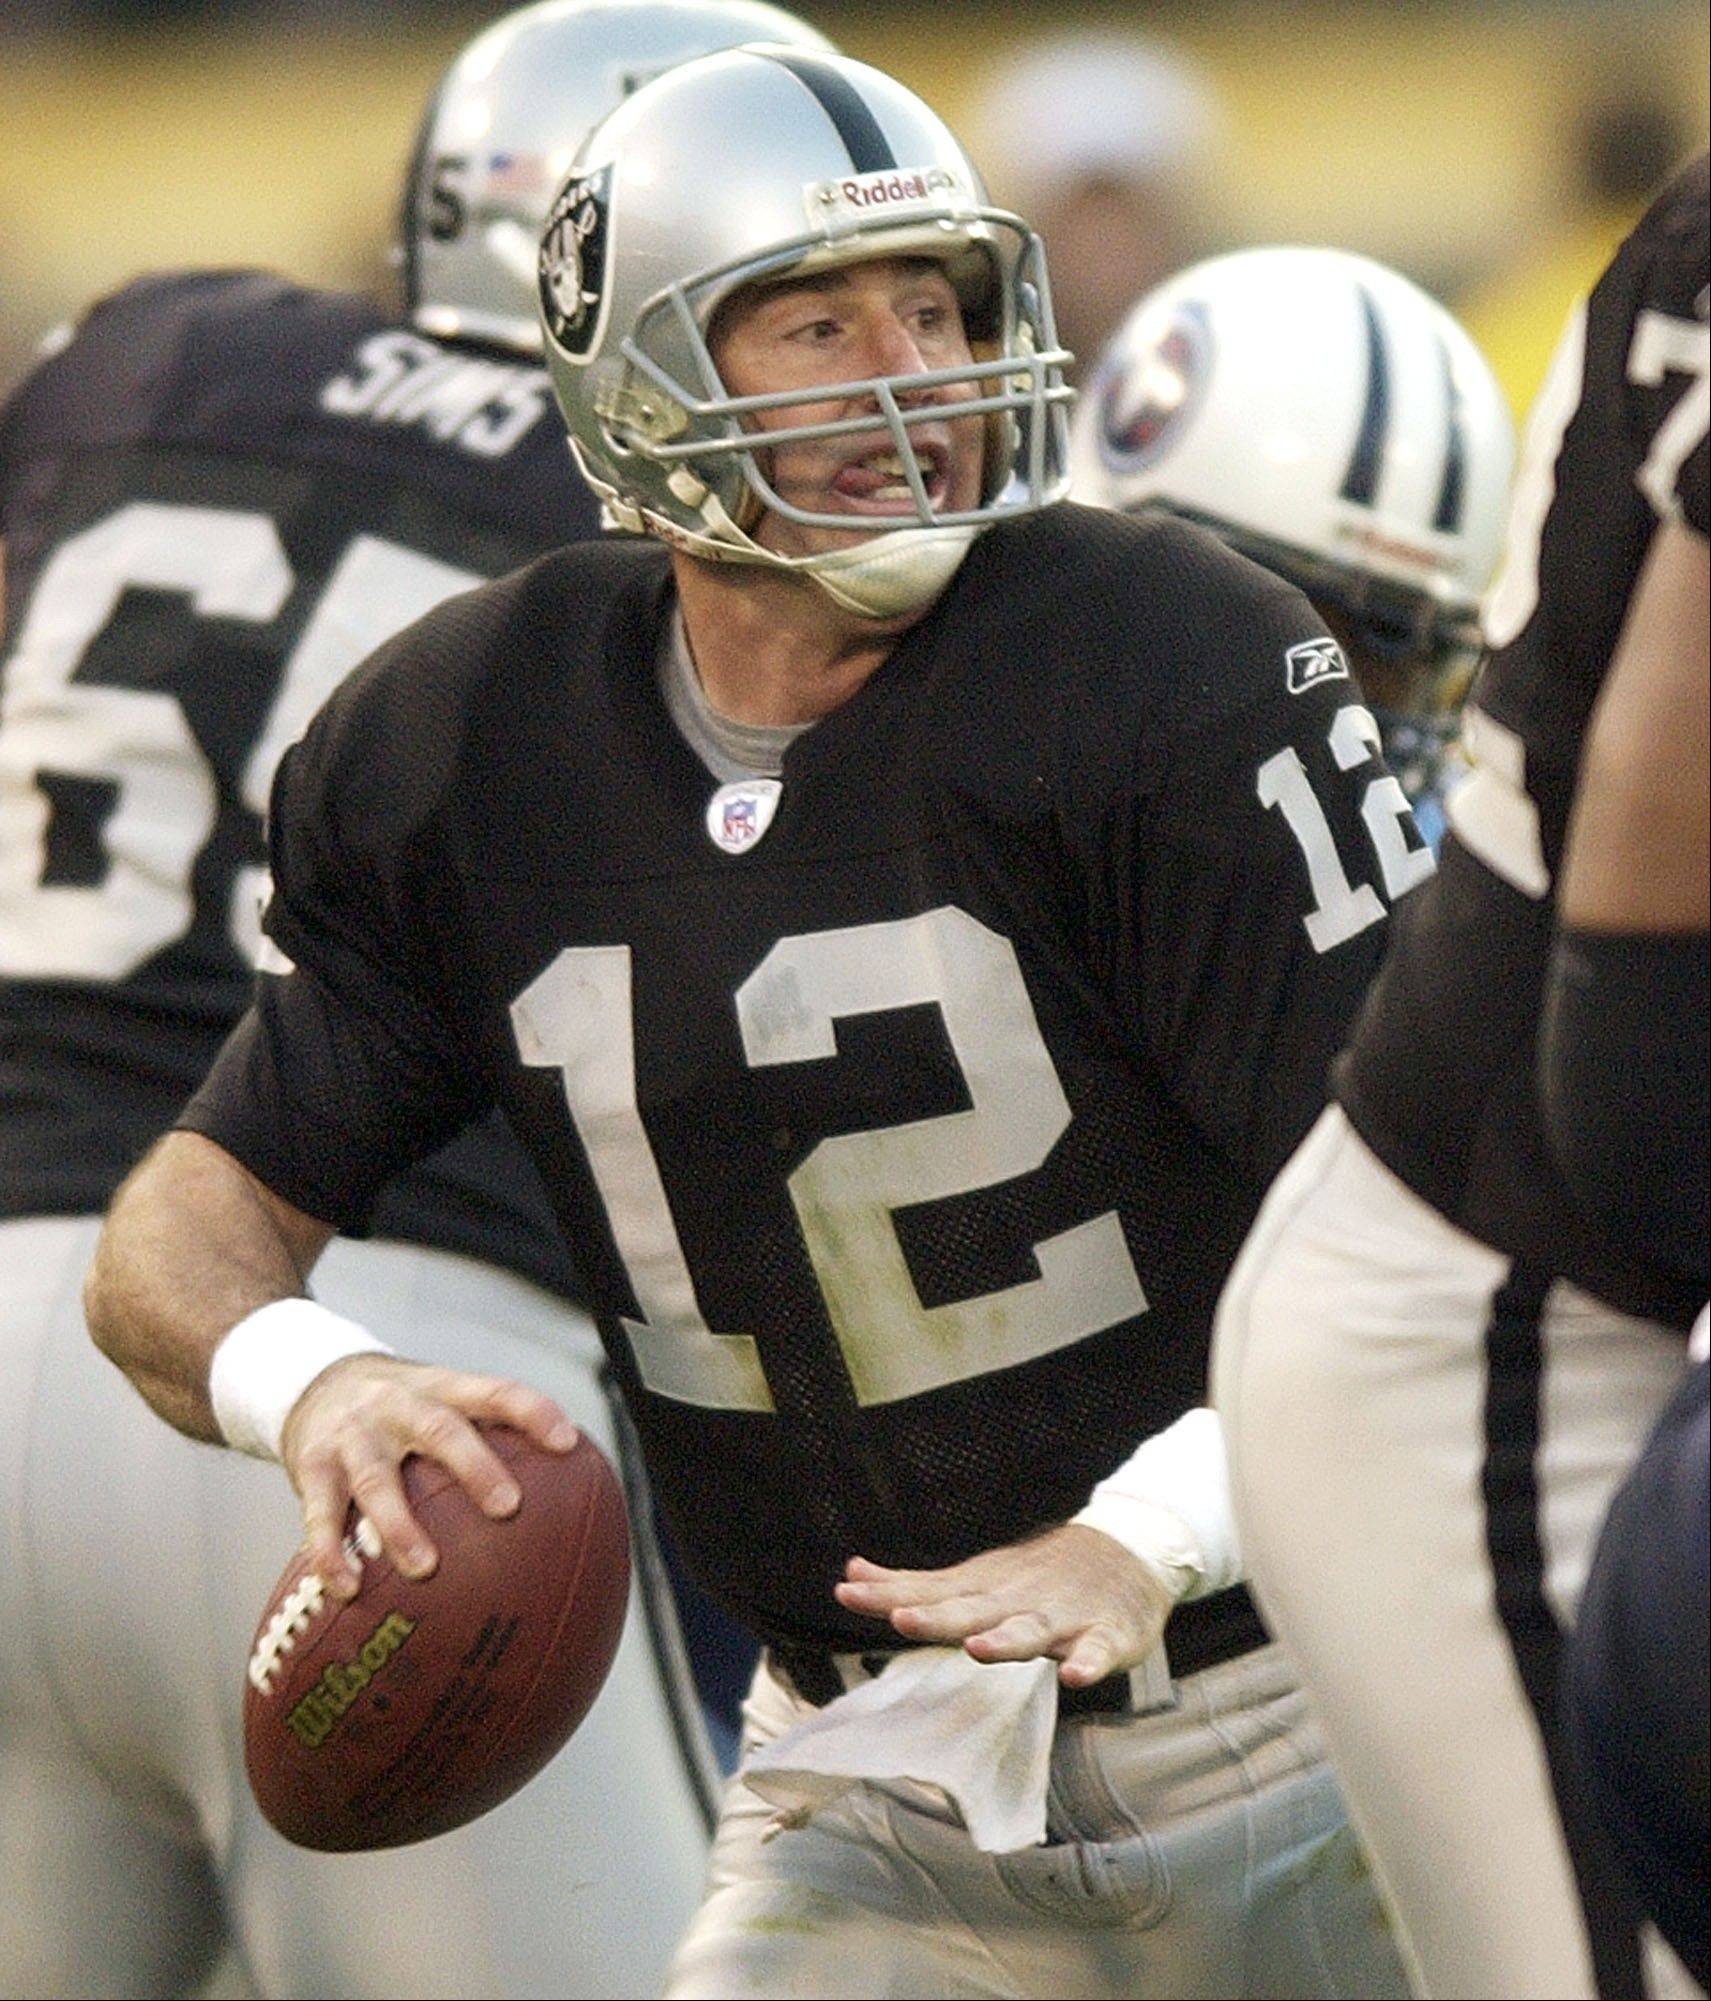 Trestman was hired by Jon Gruden in 2001 to serve as a senior assistant on the Oakland Raiders staff before being promoted by new coach Bill Callahan to offensive coordinator/quarterbacks coach a year later. The 2002 Raiders led the NFL in total offense with 389.8 yards and 279.7 passing yards per game, and advanced to Super Bowl XXXVII, their first NFL title game appearance in 20 years. QB Rich Gannon was named the NFL's MVP after throwing for 4,689 yards.